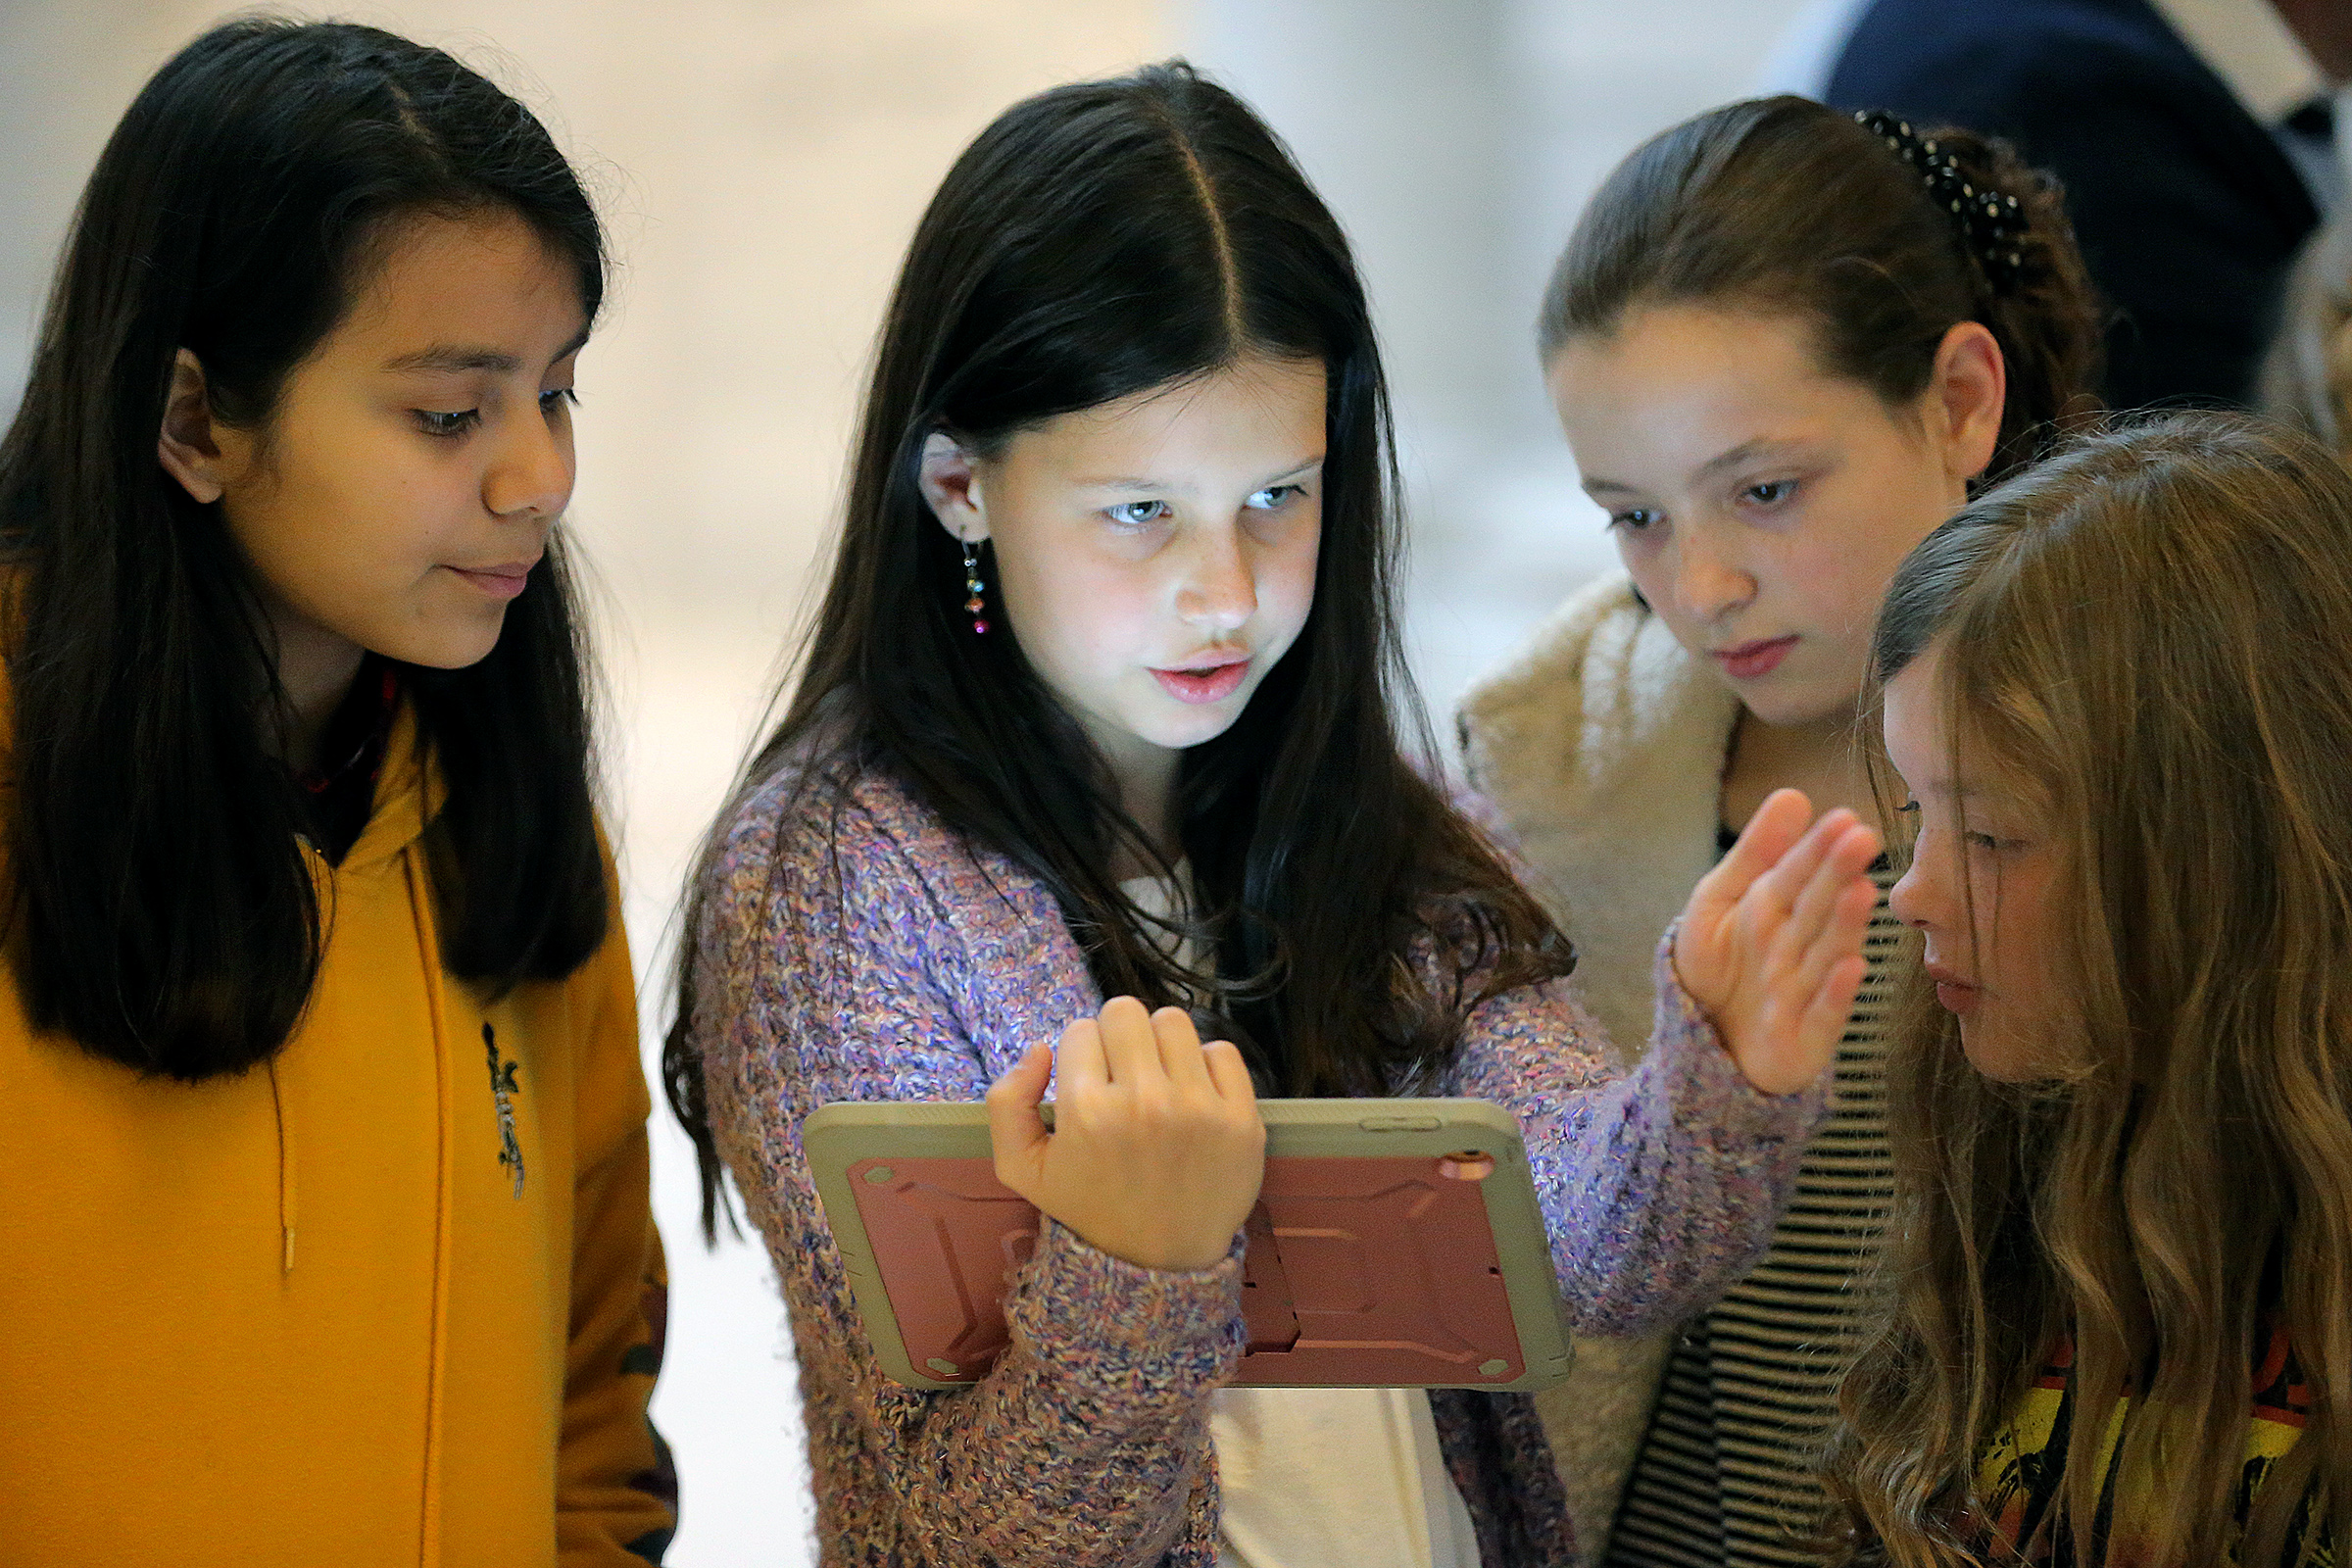 April Martinez, Katie Ketchoyian, Natalie Ellis and Aurora Payton, fifth-graders at Horizon Elementary in Murray, work out the programming for a toy at the state Capitol in Salt Lake City on Monday, Dec. 9, 2019. Gov. Gary Herbert joined leaders in education and the tech industry to announce the dedication of funds in his upcoming budget to ensure every K-12 student in the state has access to computer science education. The governor also declared Computer Science Education Week.